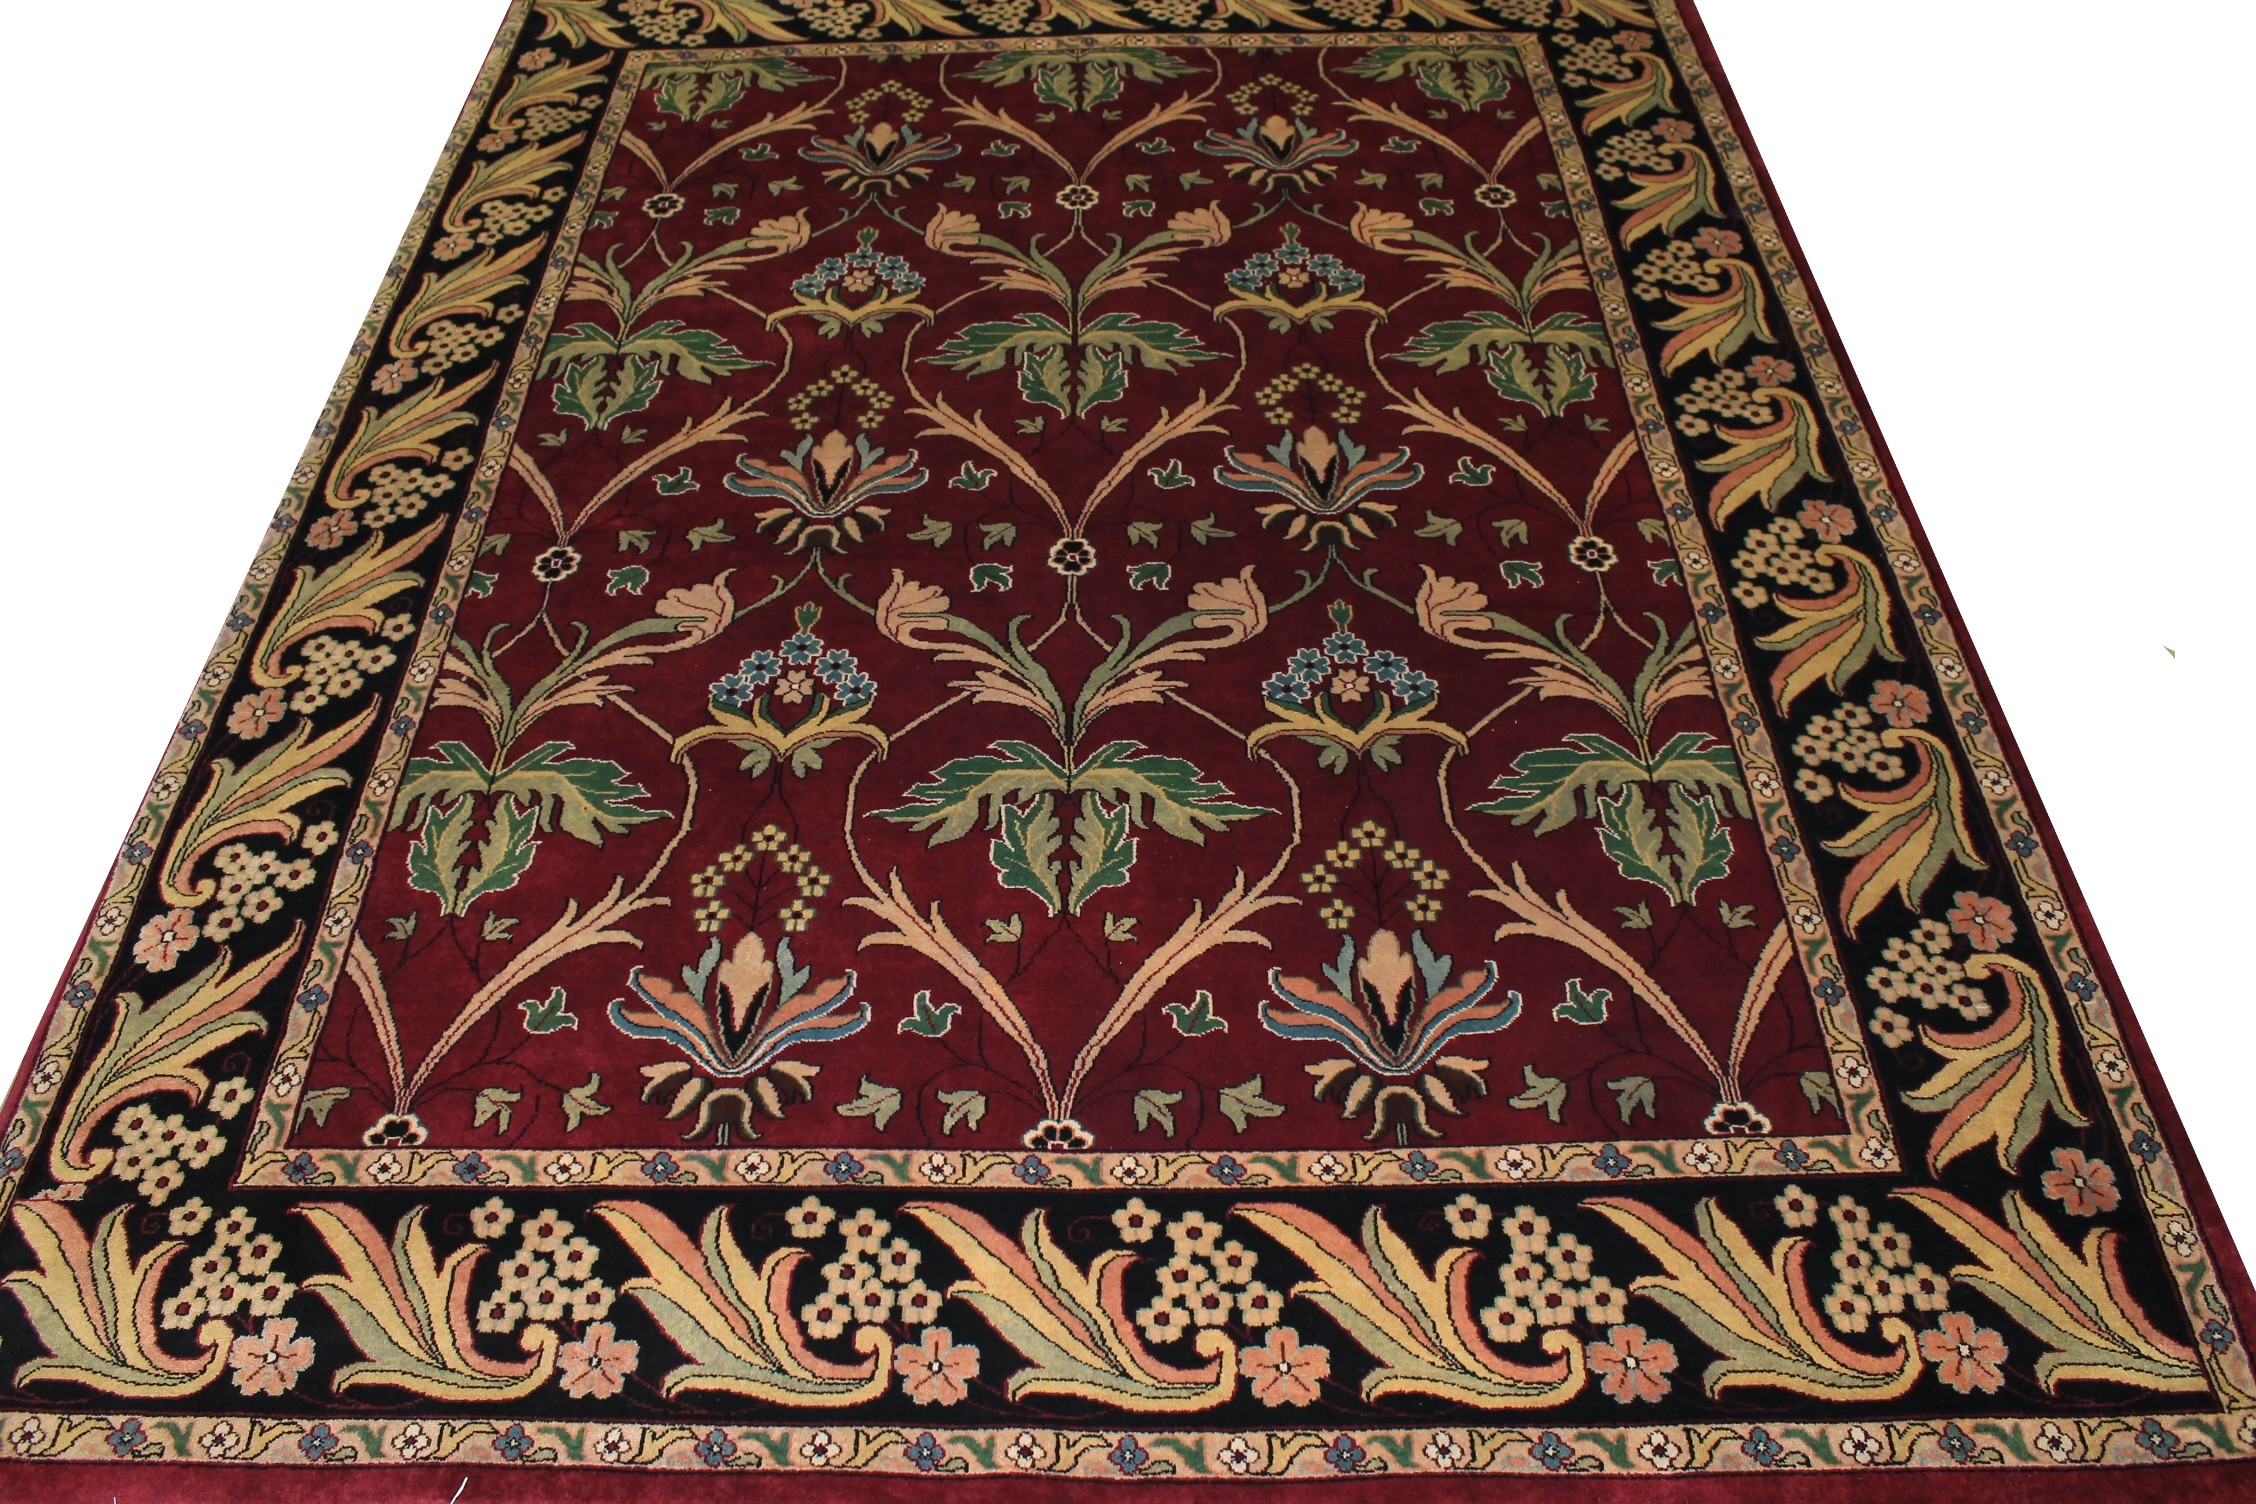 9x12 Traditional Hand Knotted Wool Area Rug - MR0105